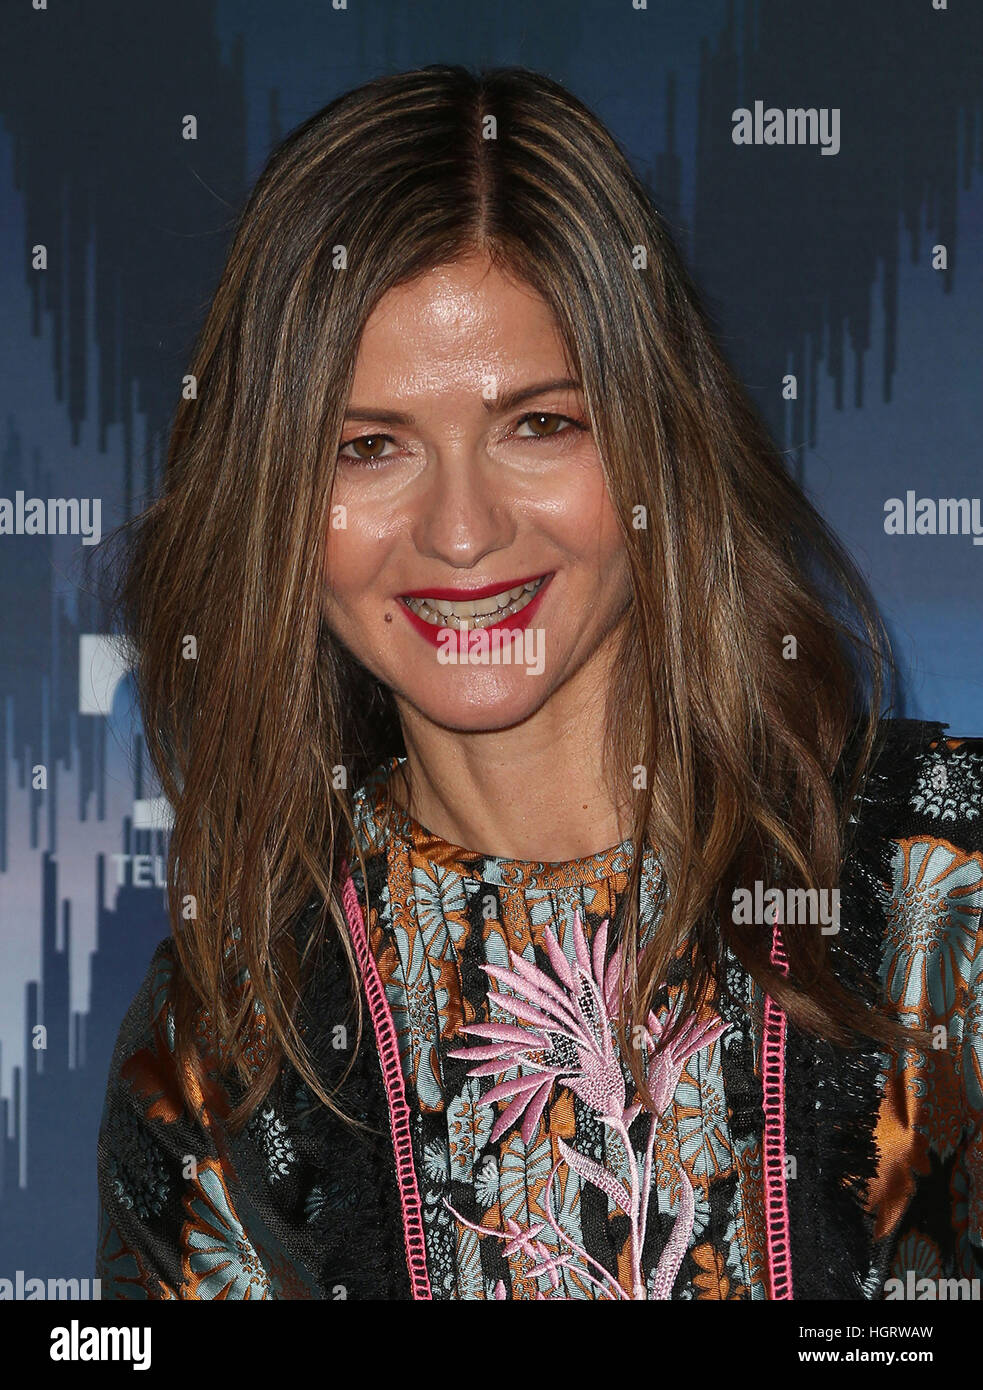 Pasadena, USA. 11th Jan, 2017. Jill Hennessey attends the 2017 FOX All-Star Winter TCA Party held at the Langham Stock Photo